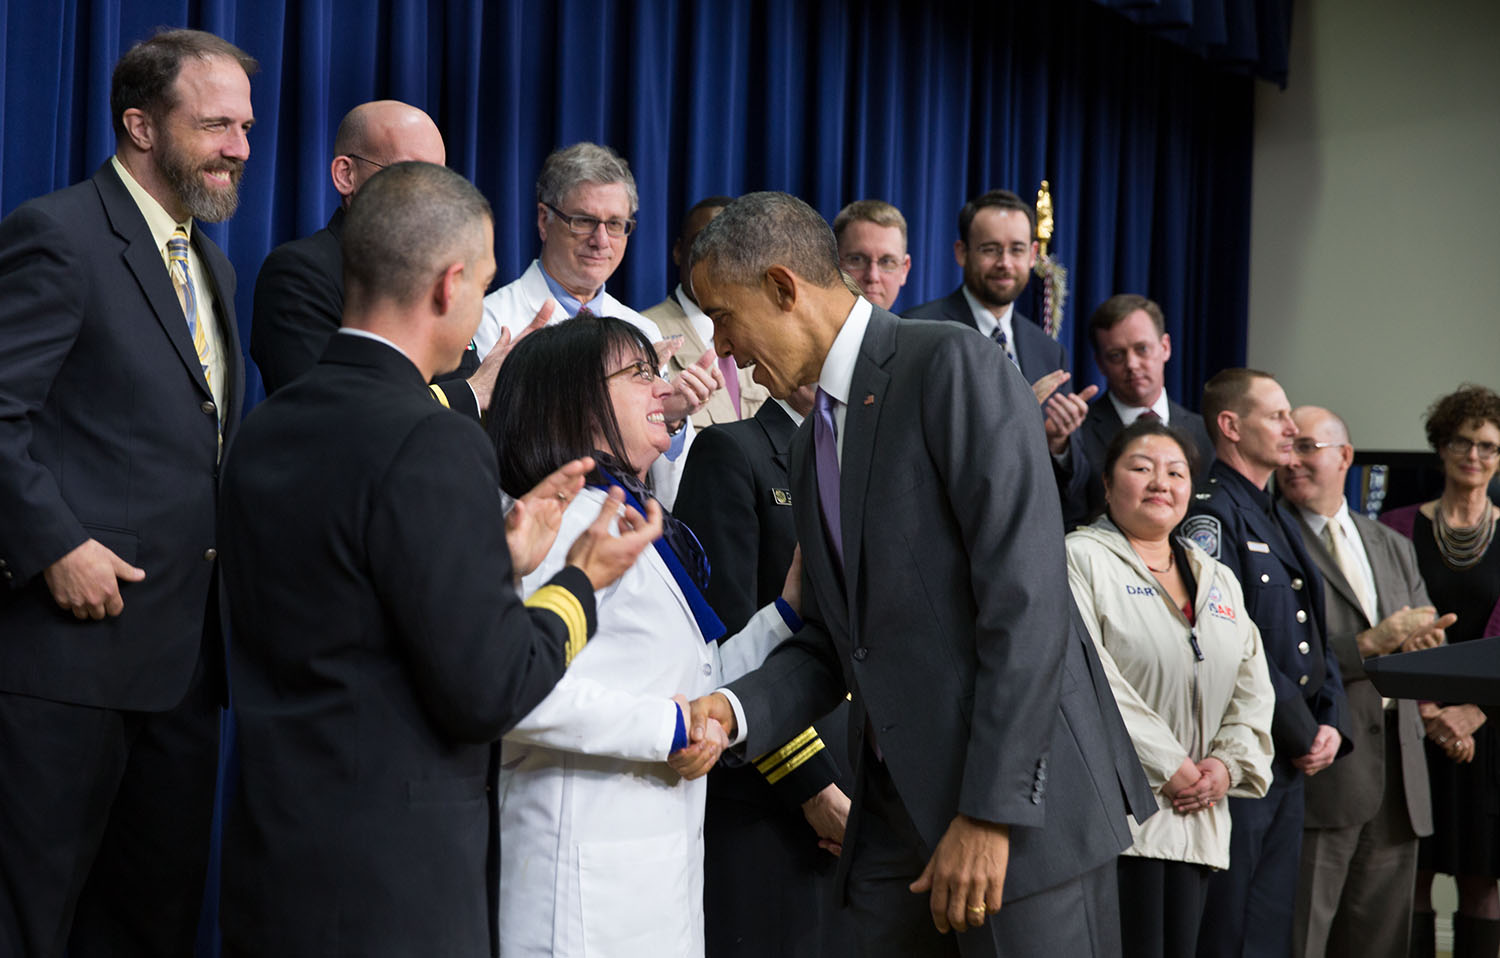 President Obama greets Dr. Nancy Sullivan, a cell biologist with the National Institutes of Health's Vaccine Research Center